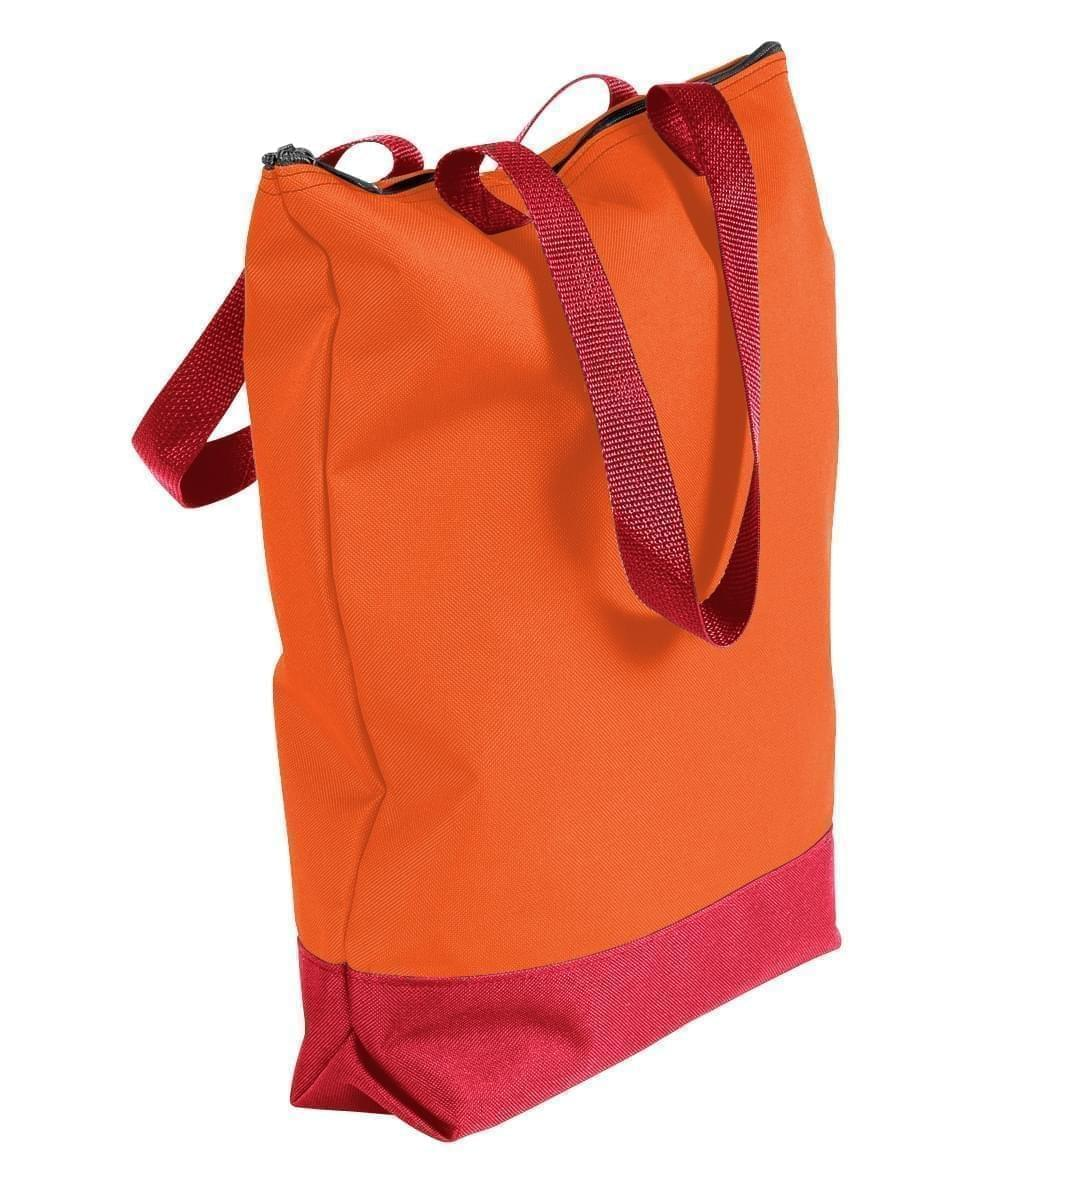 USA Made Poly Notebook Tote Bags, Orange-Red, 1AAMX1UAX2